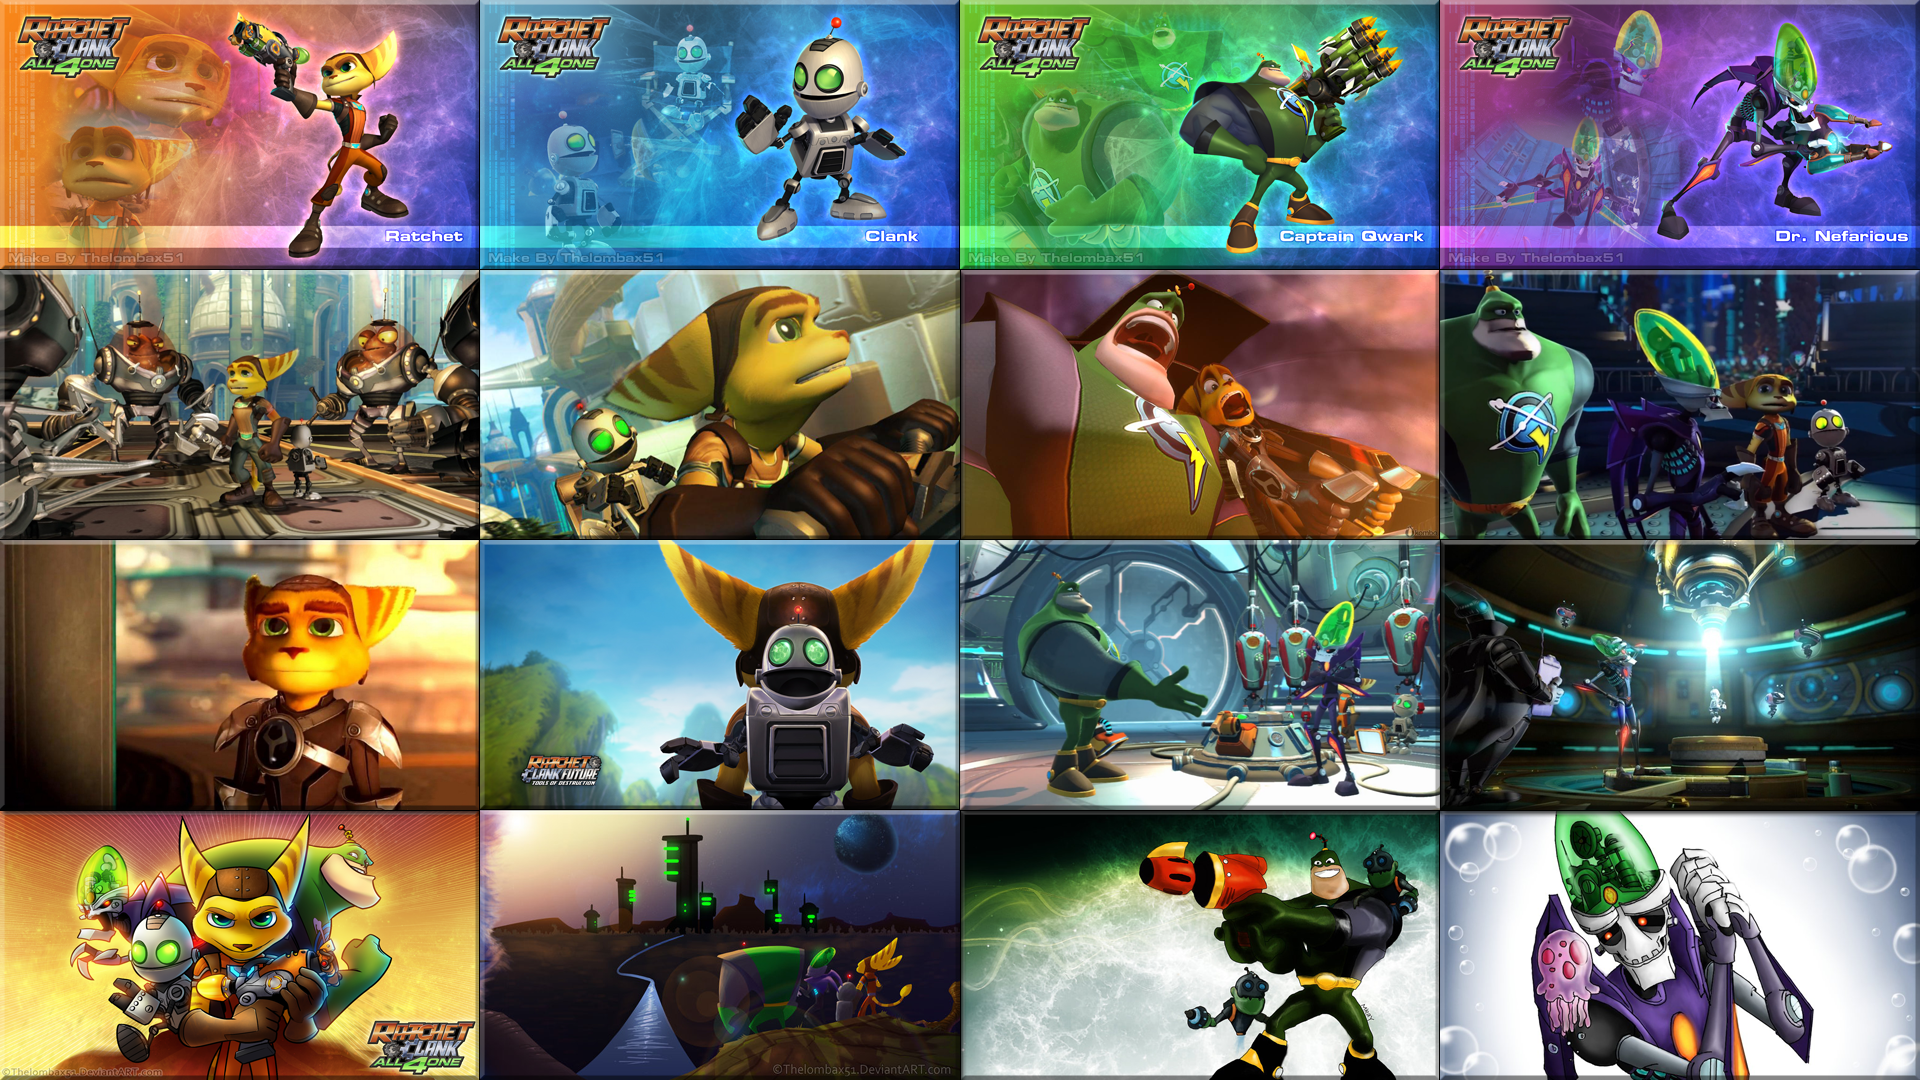 Free Download Ratchet And Clank All 4 One Screenshot 16x By Gt4tube 1920x1080 For Your Desktop Mobile Tablet Explore 49 Ratchet And Clank Wallpaper Hd Ratchet And Clank Wallpapers